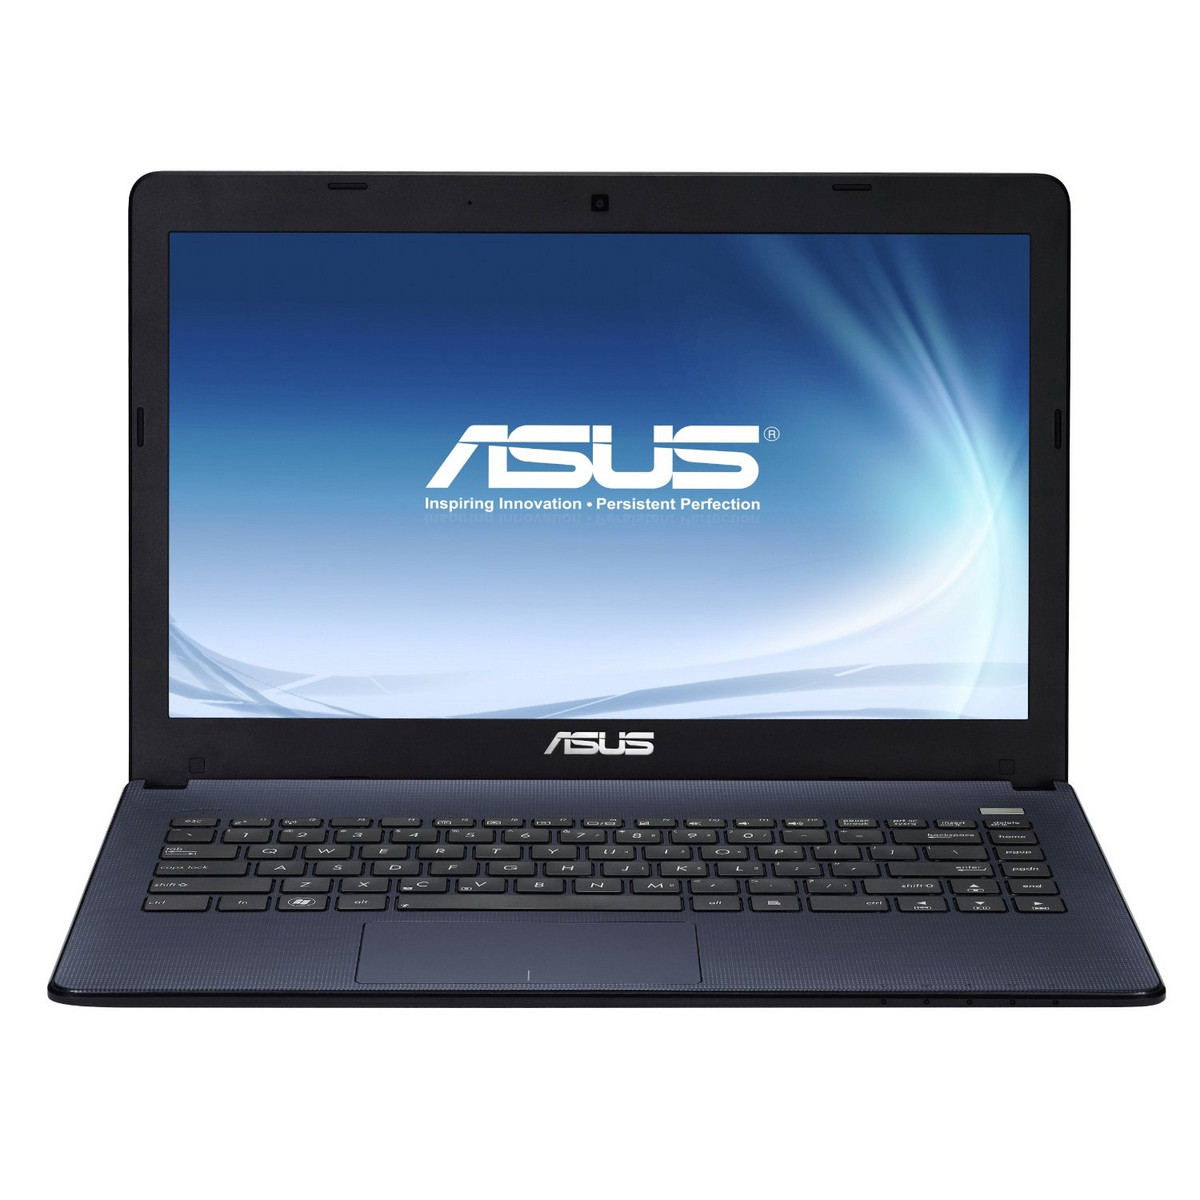 ASUS X401A NOTEBOOK VIRTUAL TOUCH 64 BIT DRIVER